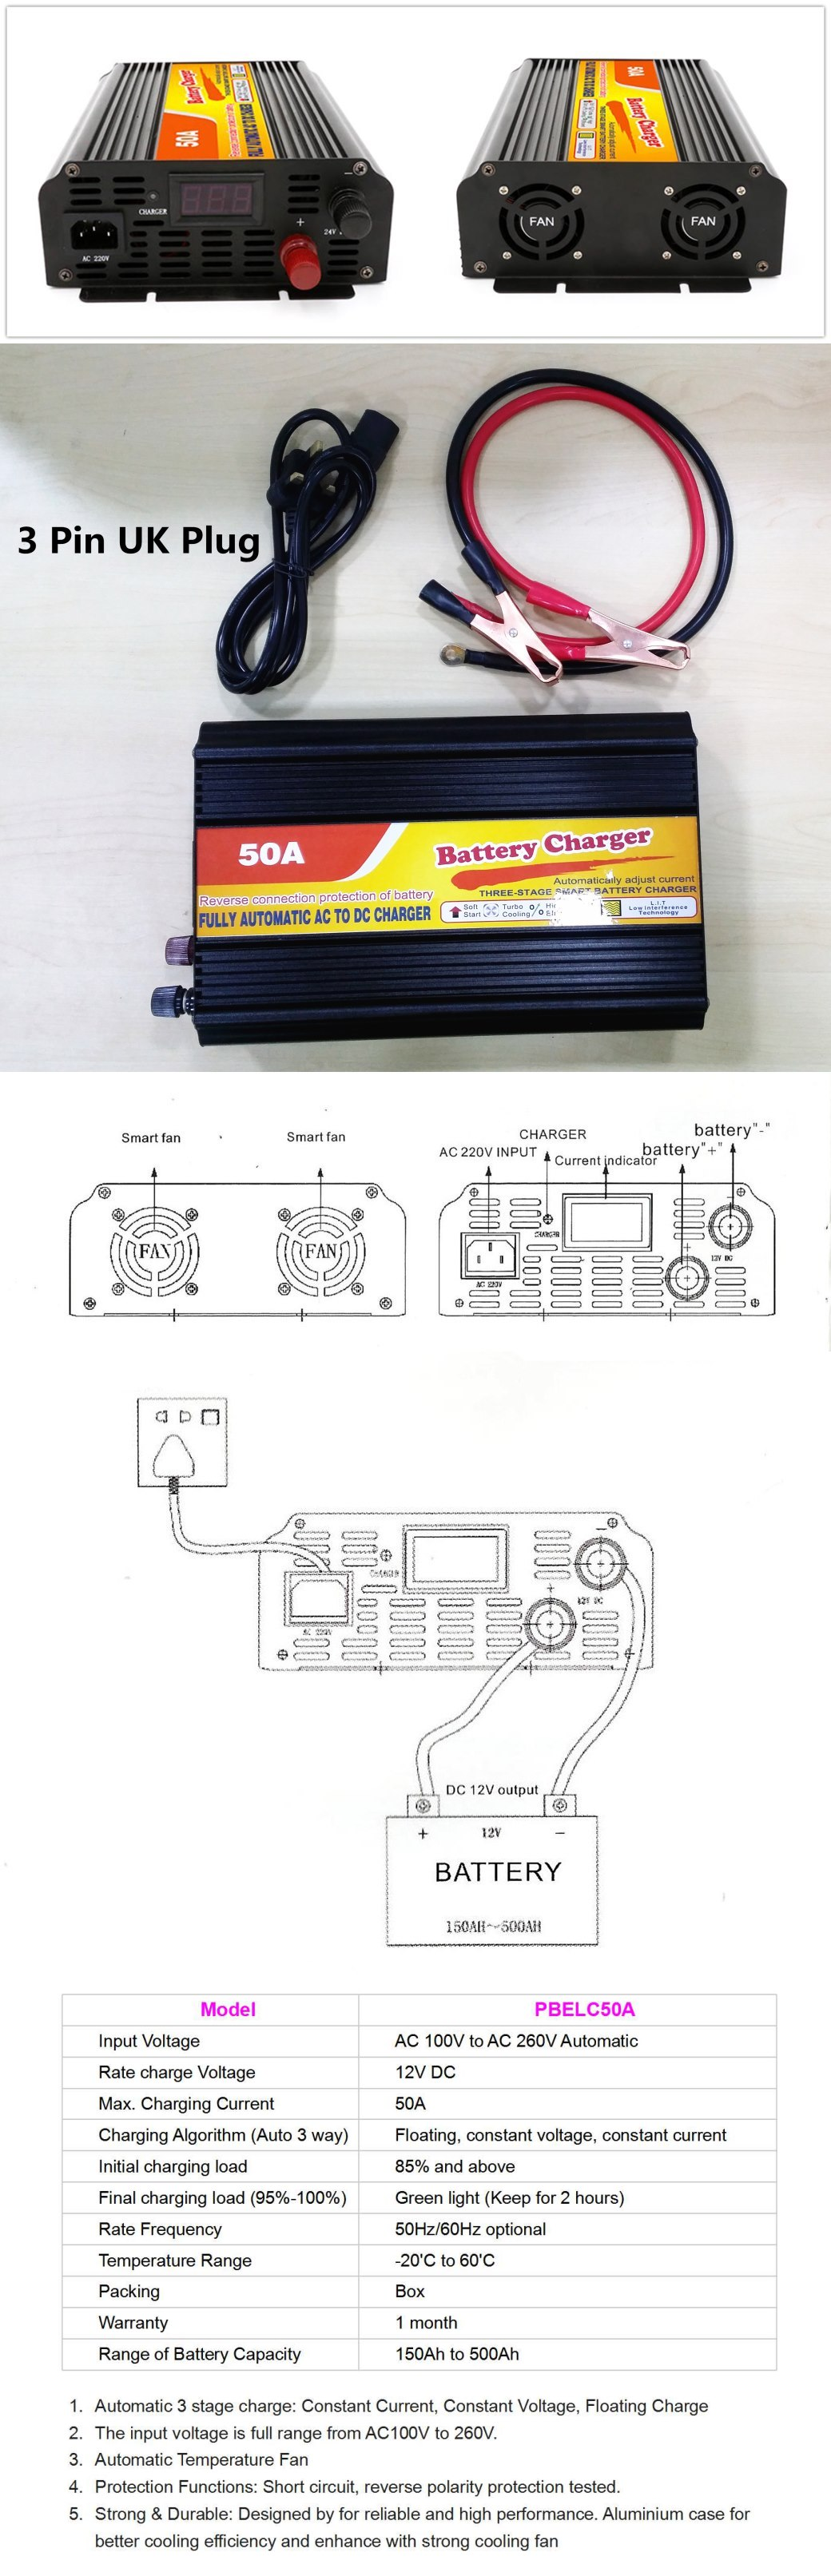 Battery Charger 50a 12v For Ups Solar Lorry Boat 150ah To 500ah Wiring Diagram Of Panels Load Fan Therefore This Type Will Damage 100ah In Long Run 10a Should Be Able Charge From Minimum 30ah Onward